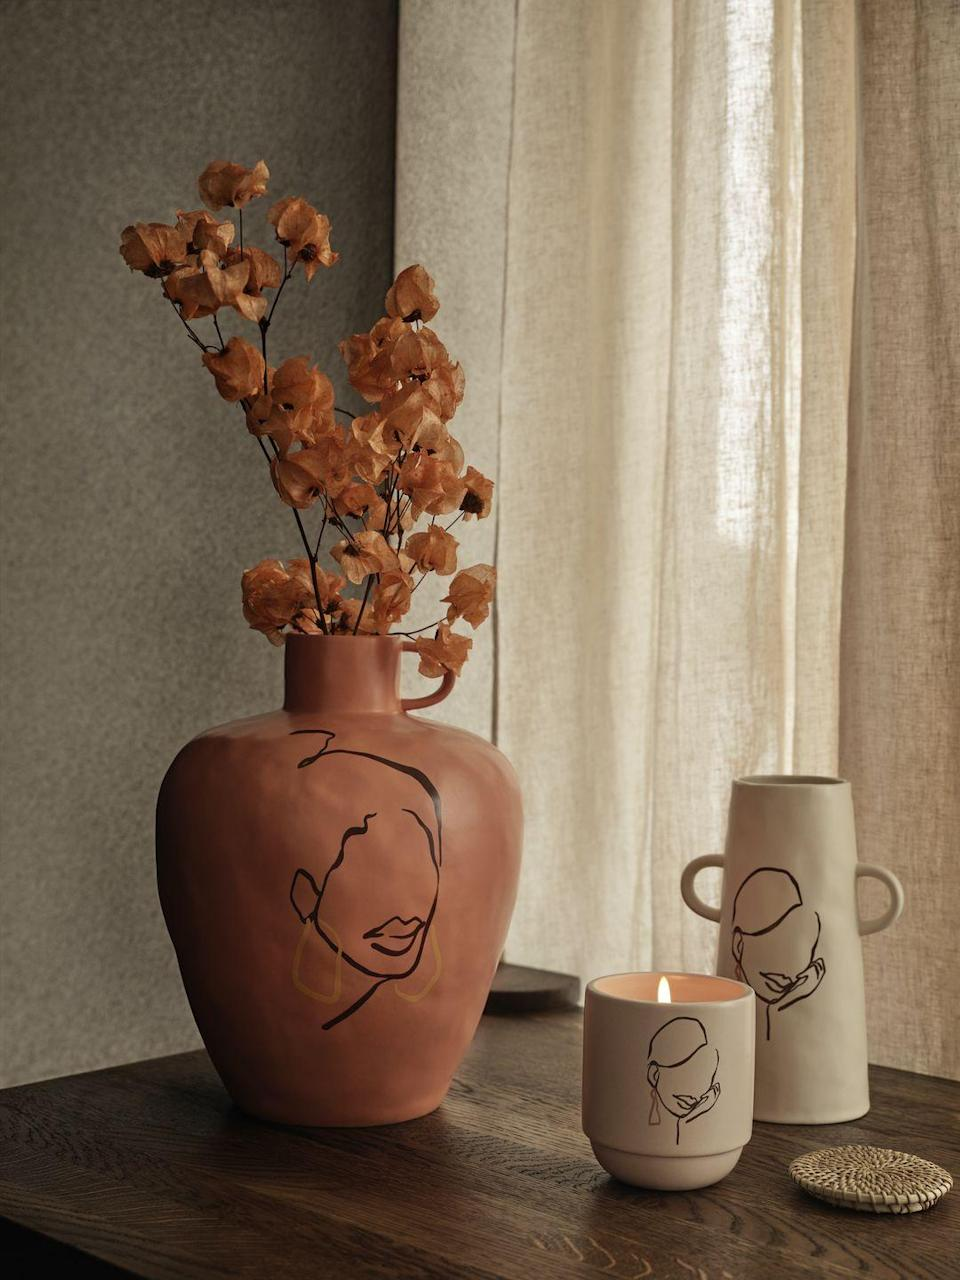 """<p>Designed by duo Sacrée Frangine, this beautiful large terracotta vase is inspired by feminine themes that explore the beauty of simple things and everyday life.</p><p>'Our pieces in the collection are gentle reminders to take time. Take time to dream, to contemplate a beautiful landscape, to smile, to spend time with people you love or miss,' says the creative duo. </p><p><a class=""""link rapid-noclick-resp"""" href=""""https://www2.hm.com/en_gb/productpage.0998162001.html"""" rel=""""nofollow noopener"""" target=""""_blank"""" data-ylk=""""slk:BUY NOW"""">BUY NOW</a></p><p><strong>Follow House Beautiful on <a href=""""https://www.instagram.com/housebeautifuluk/"""" rel=""""nofollow noopener"""" target=""""_blank"""" data-ylk=""""slk:Instagram"""" class=""""link rapid-noclick-resp"""">Instagram</a>.</strong></p>"""